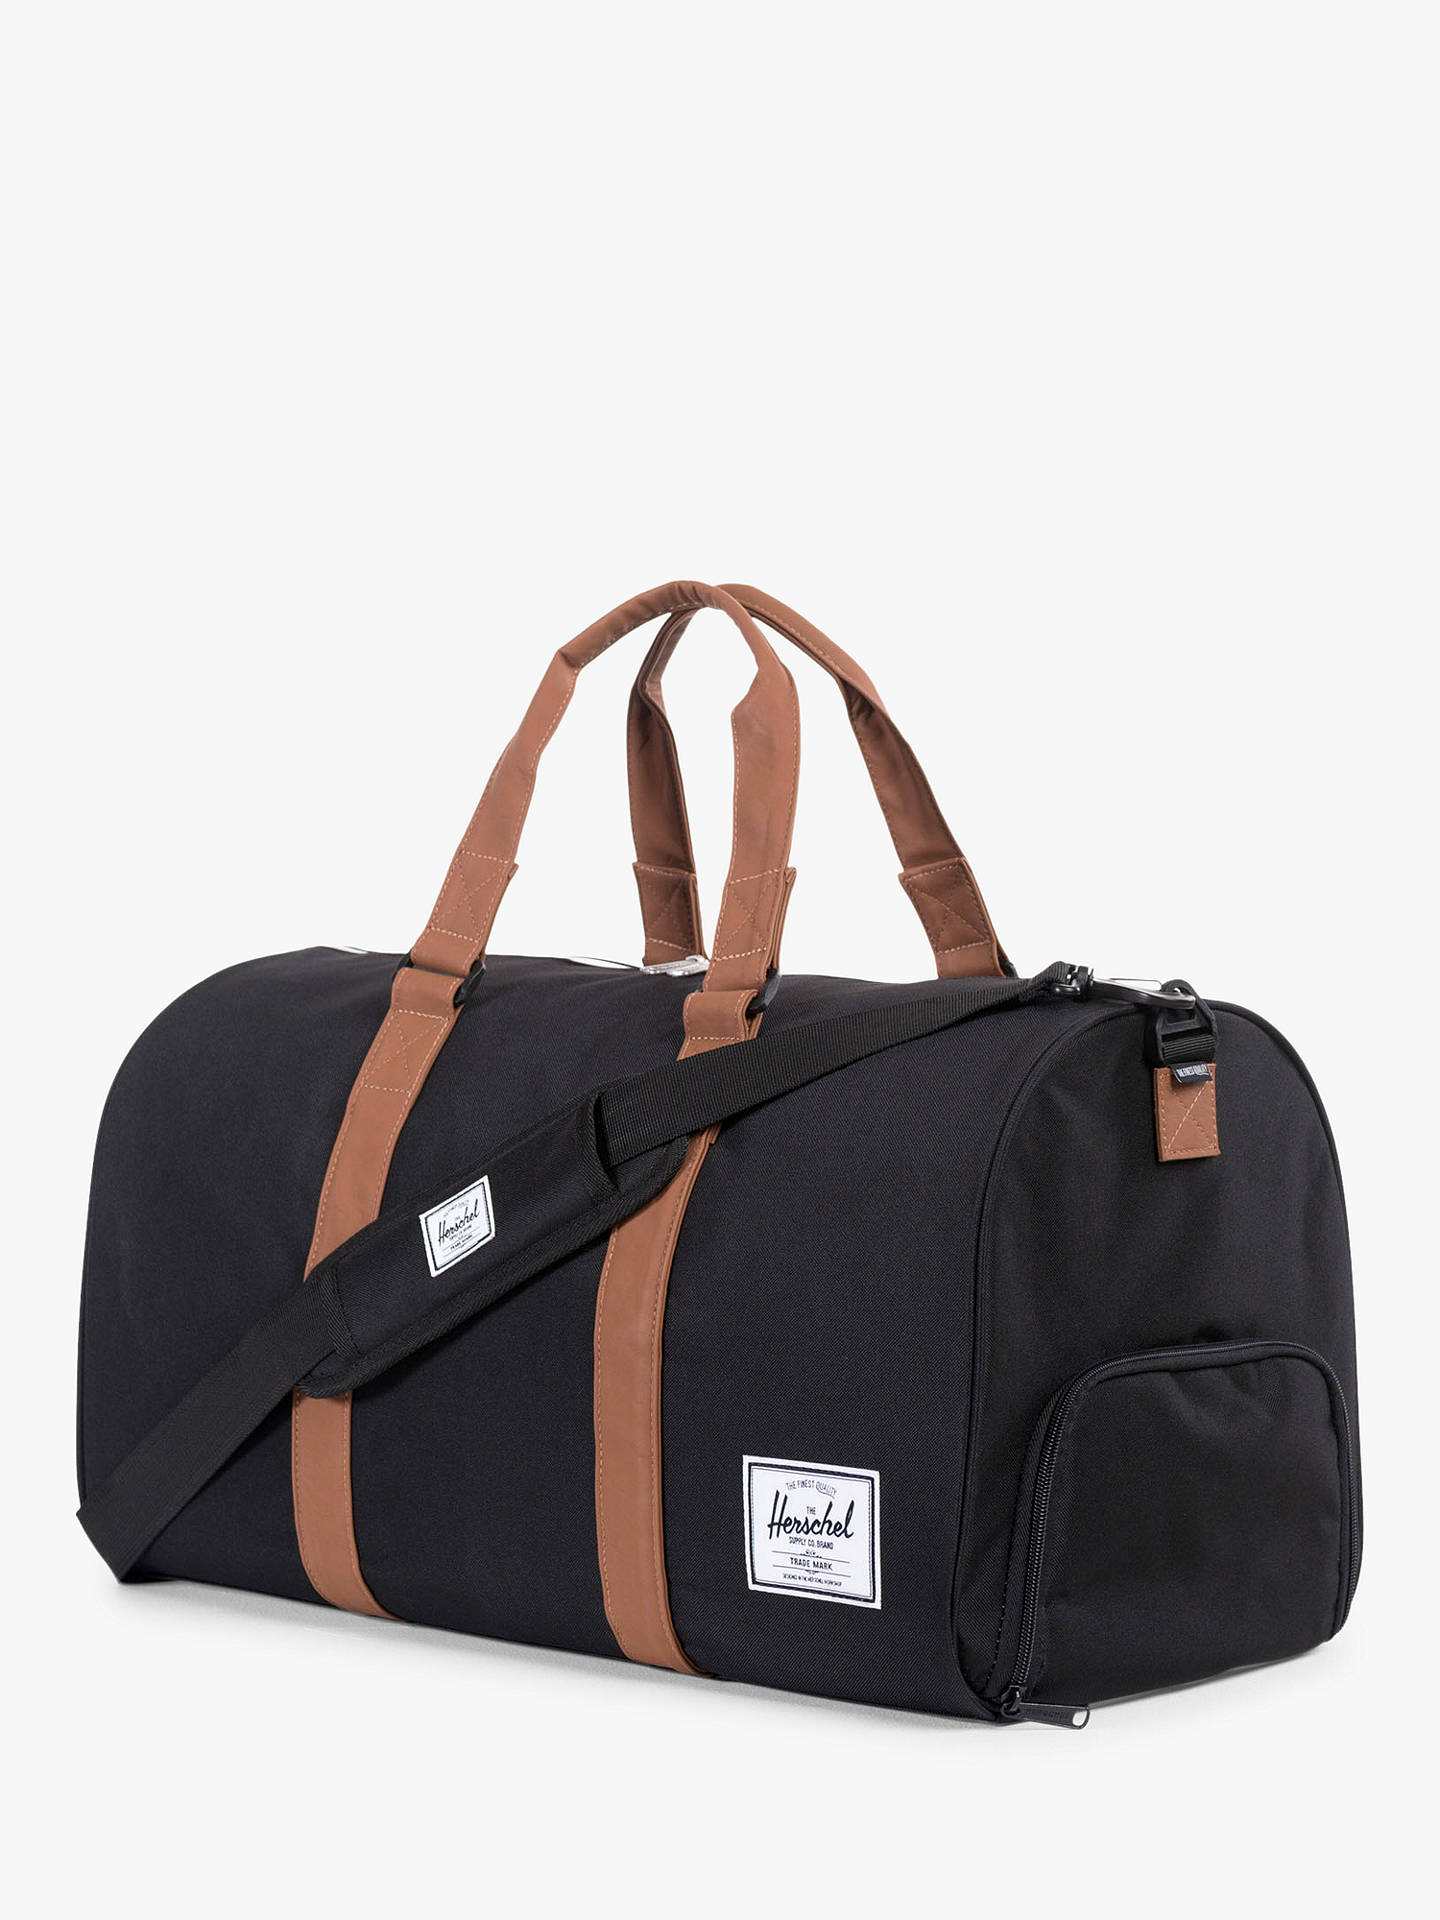 Buy Herschel Supply Co. Novel Duffle Holdall, Black Online at johnlewis.com